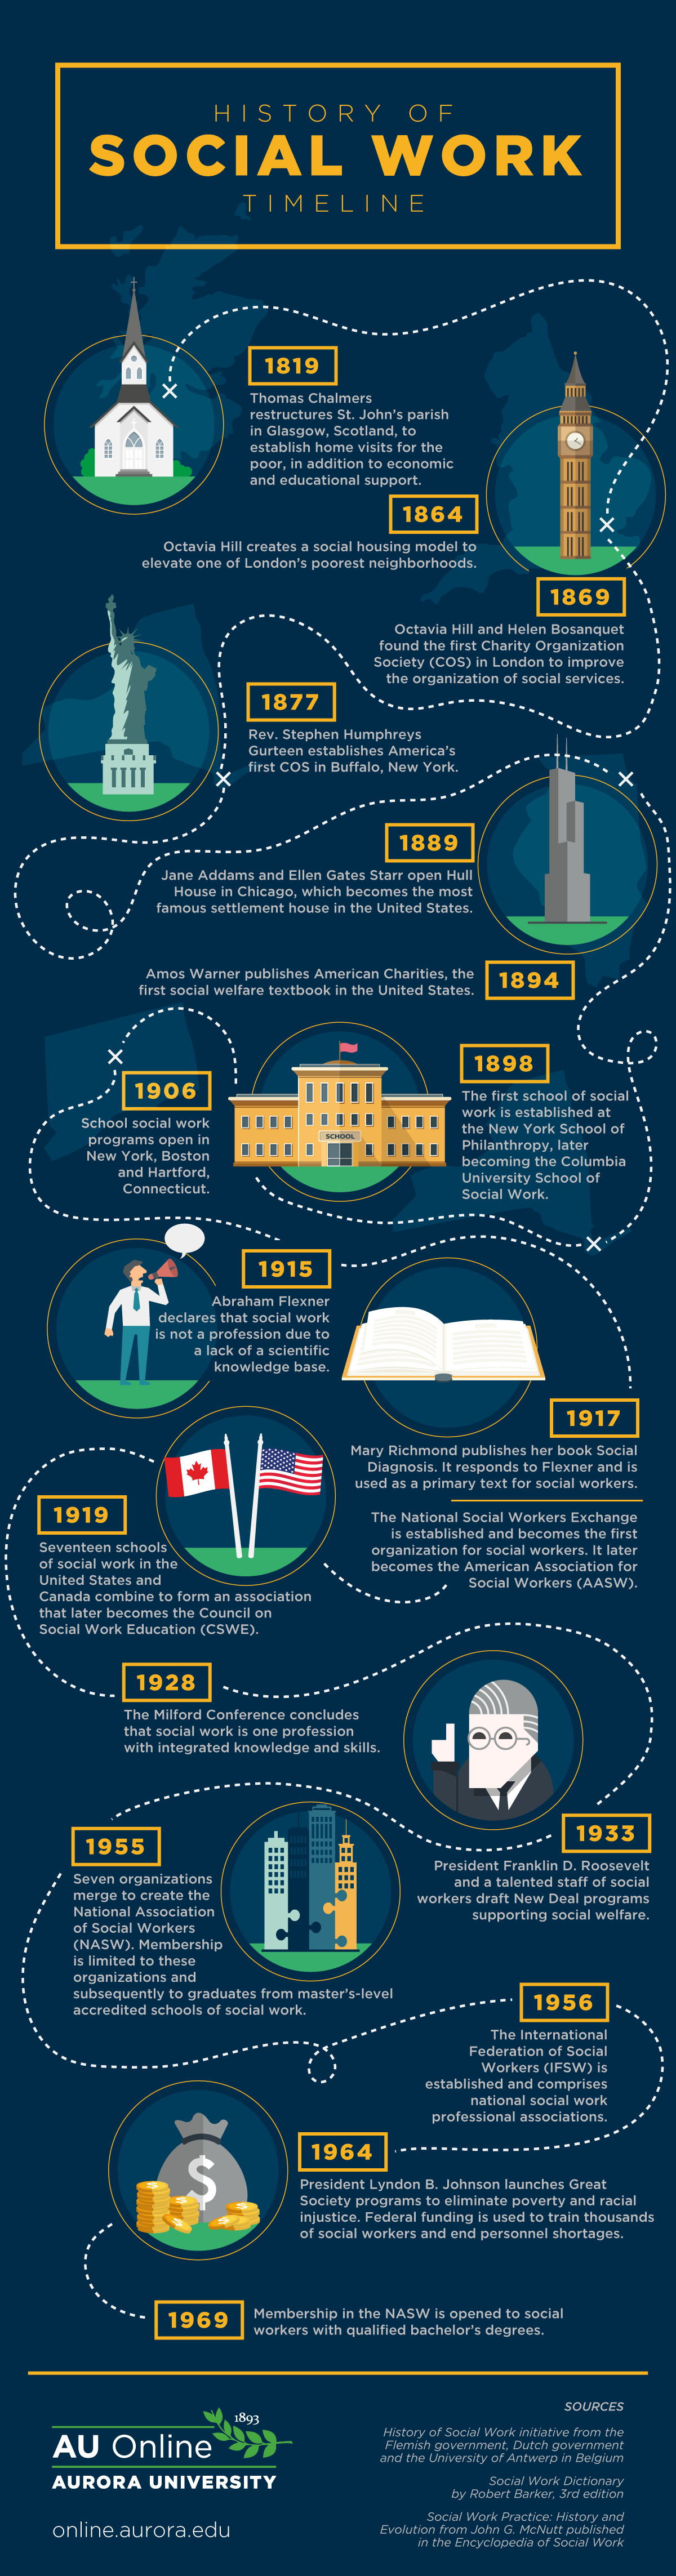 History of Social Work Timeline infographic